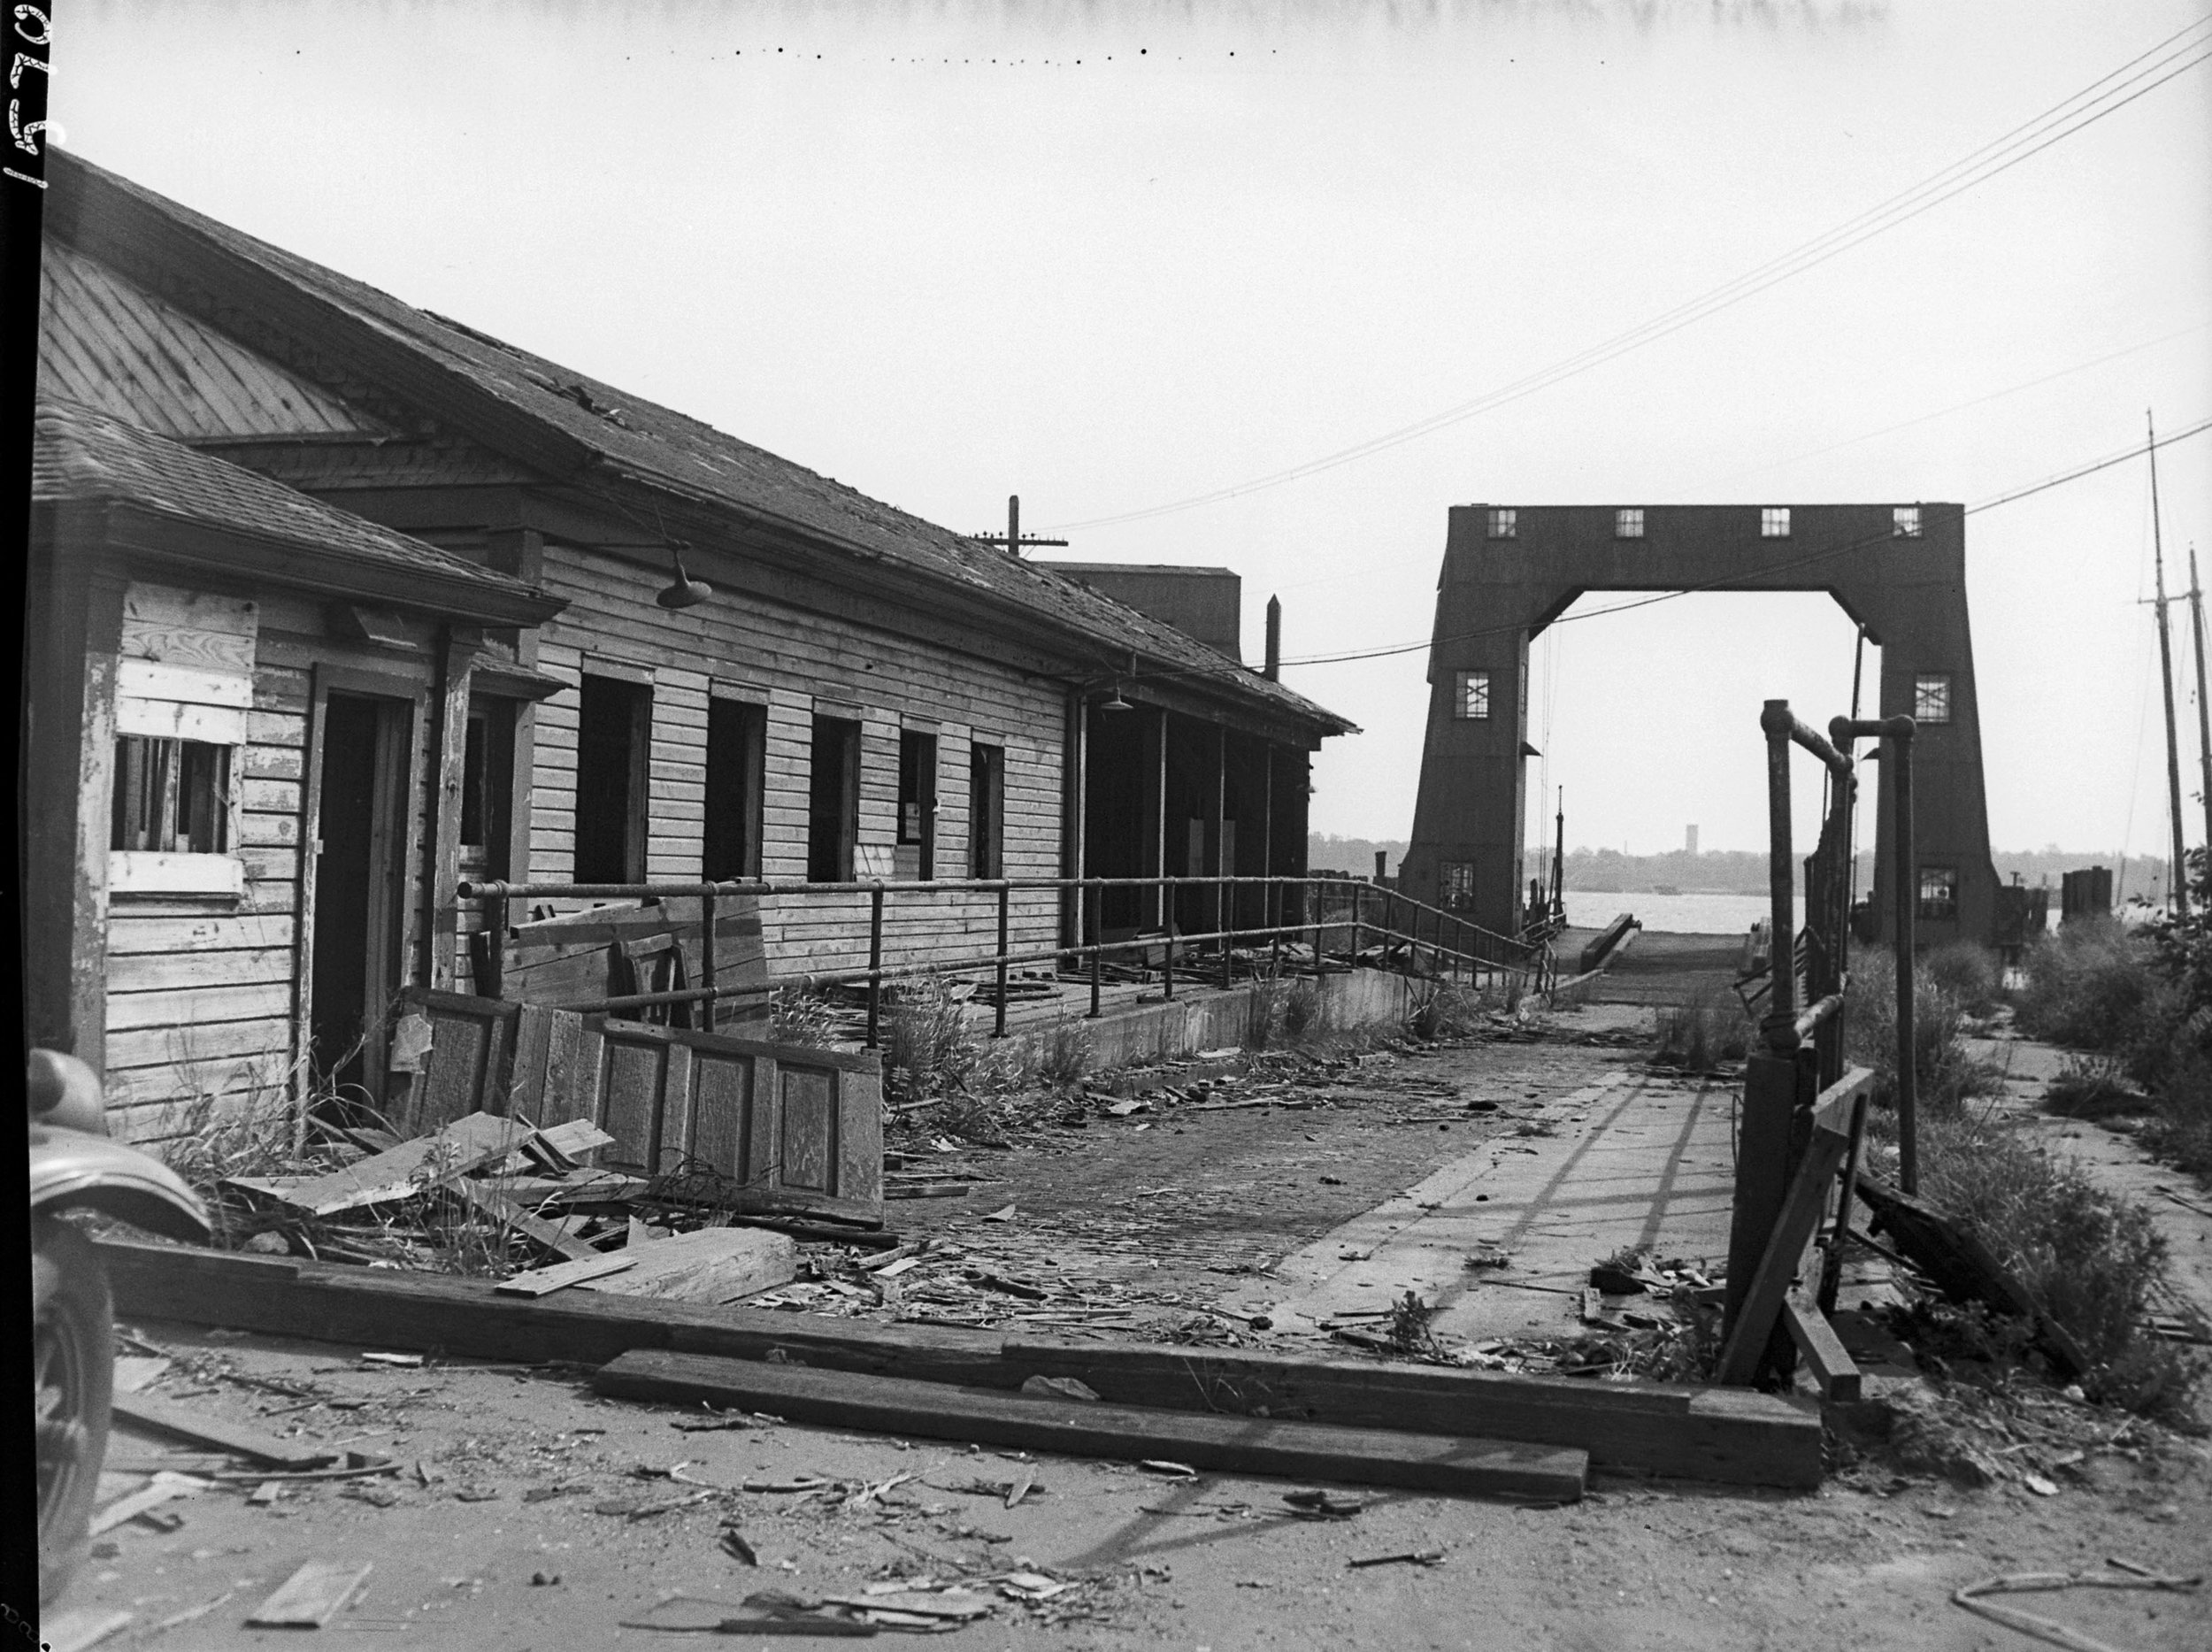 Clason Point Ferry House in disrepair, 1951. This Municipal Ferry route was in operation from 1921-1939. It ran between Clason Point in the Bronx and College Point in Queens. Department of Marine and Aviation photographs. NYC Municipal Archives.